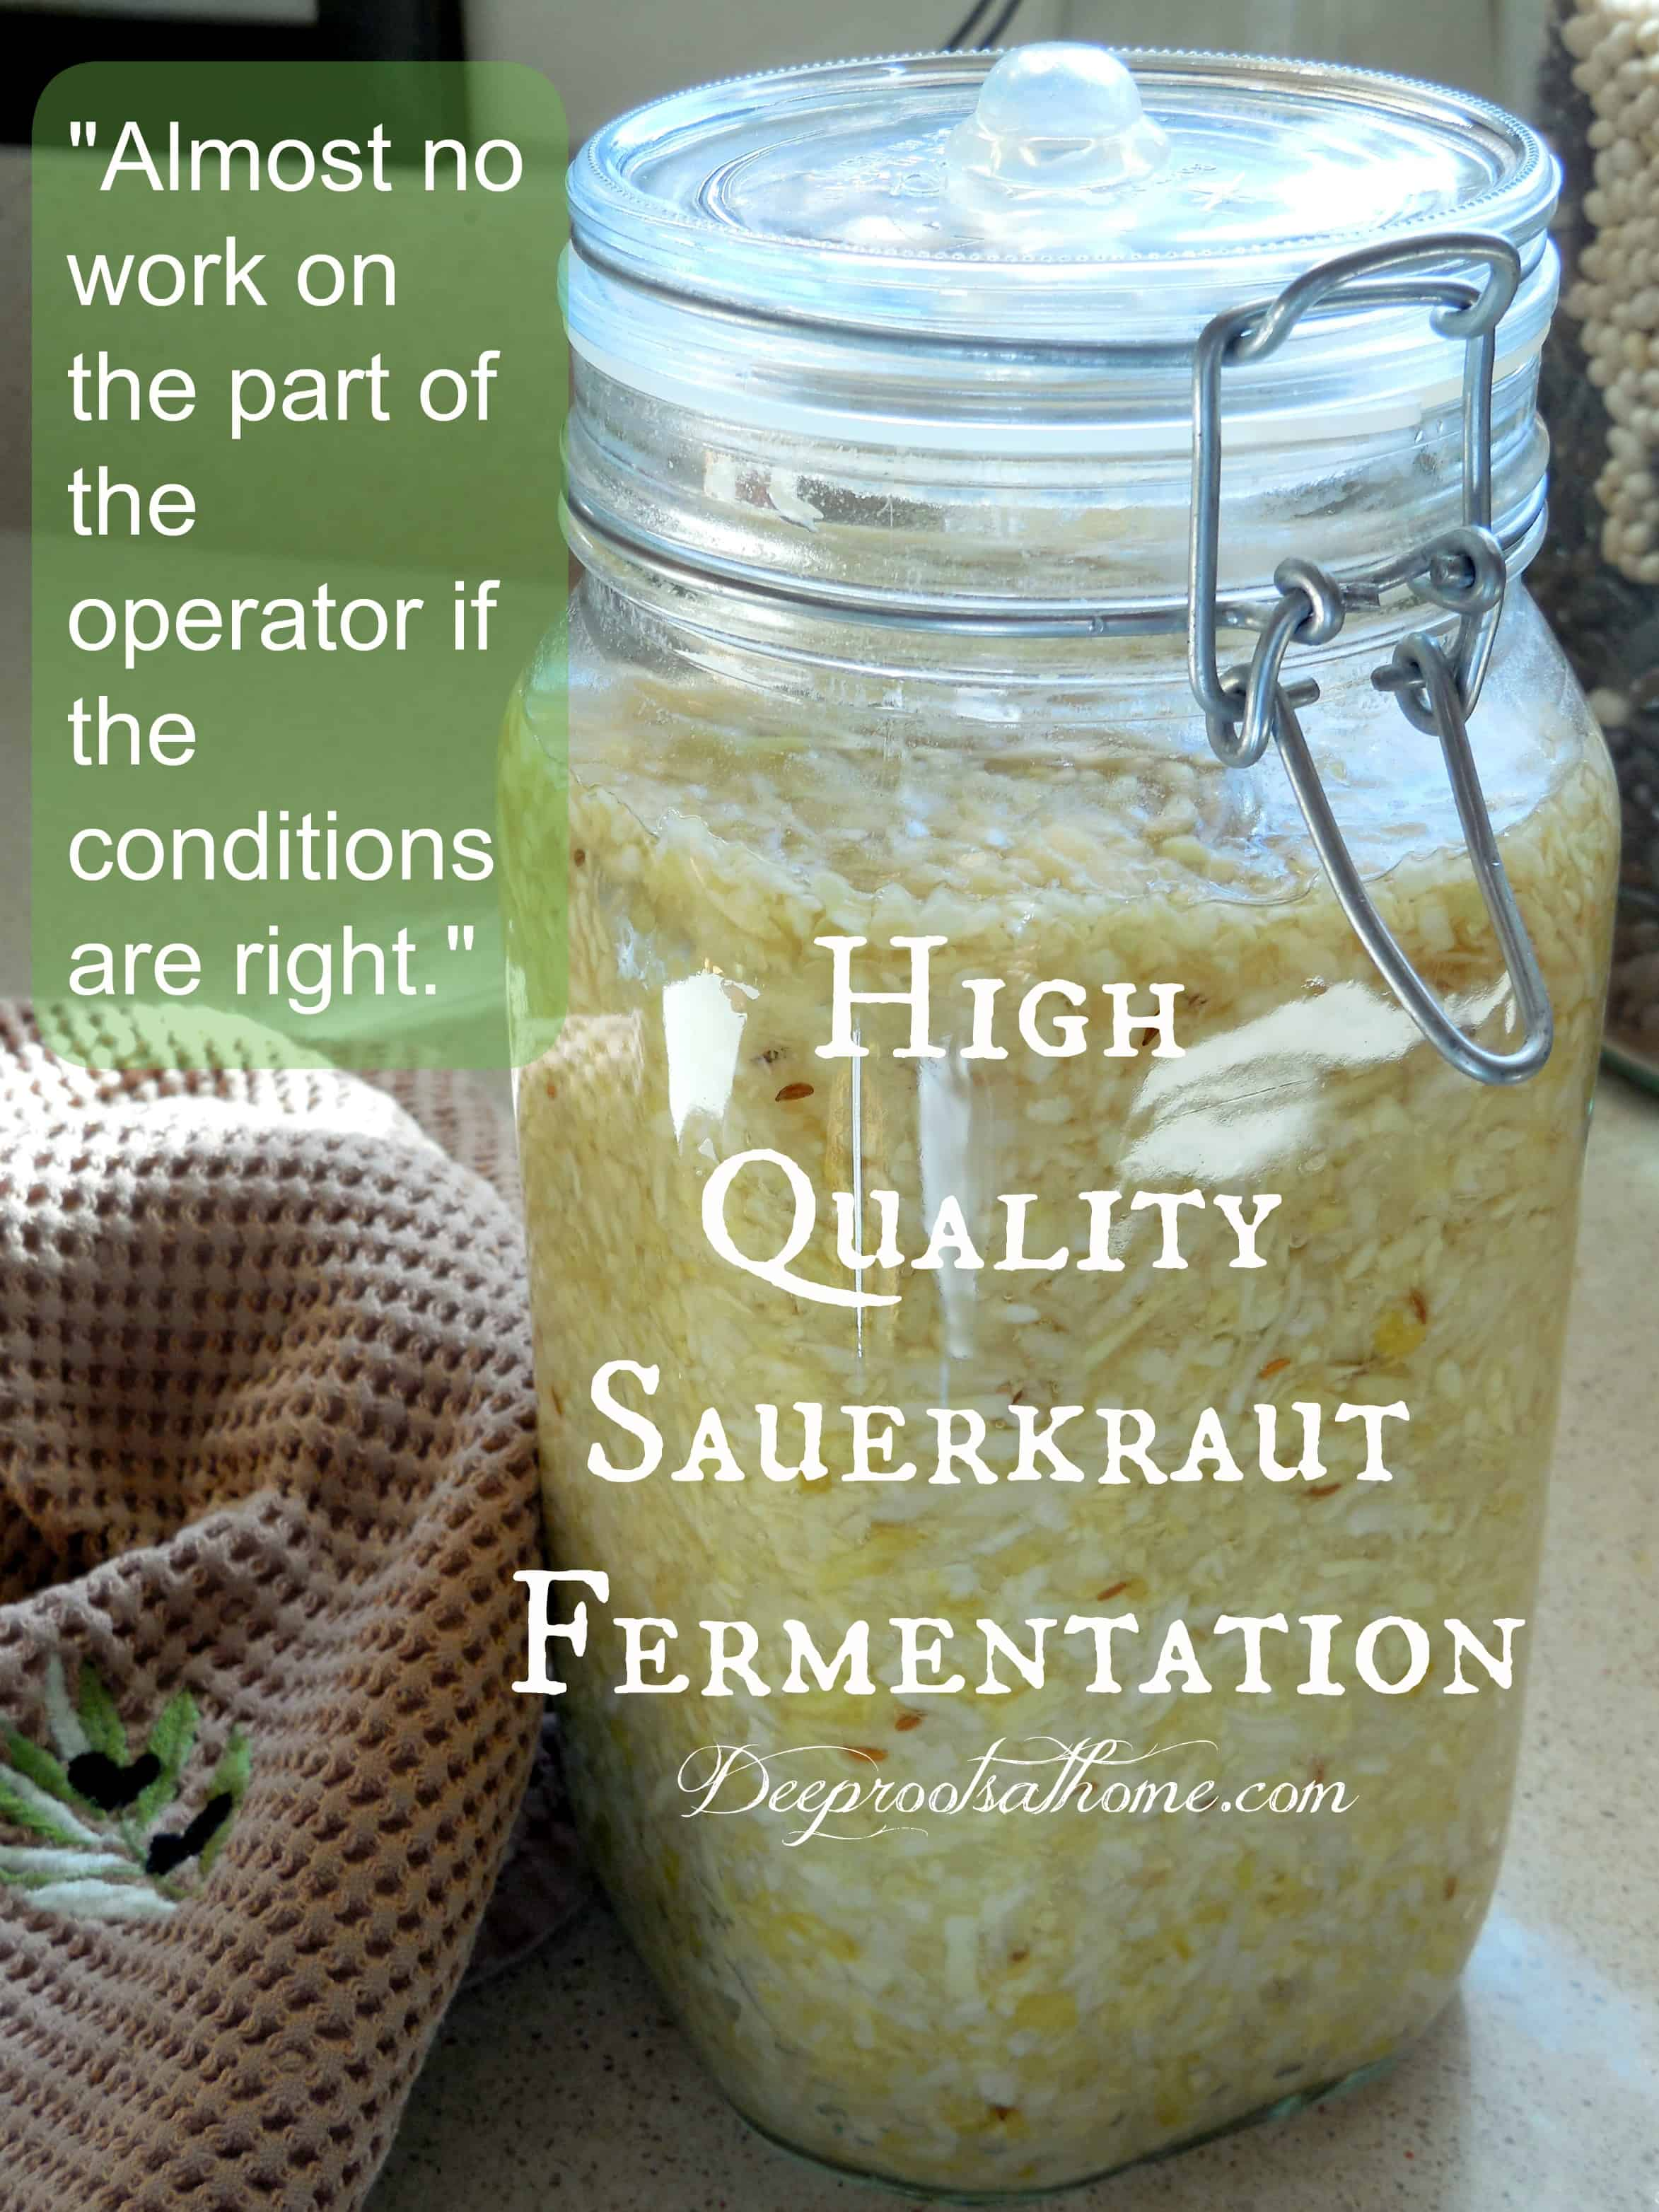 High Quality Sauerkraut Fermentation, ideal food, Sally Fallon, Nourishing Traditions, book, long sea voyages, Captain Cook, improve mood, food preservation, lacto-fermenting food, lactic acid bacteria, cabbage, digestible, Celtic sea salt, recipe, probiotic,